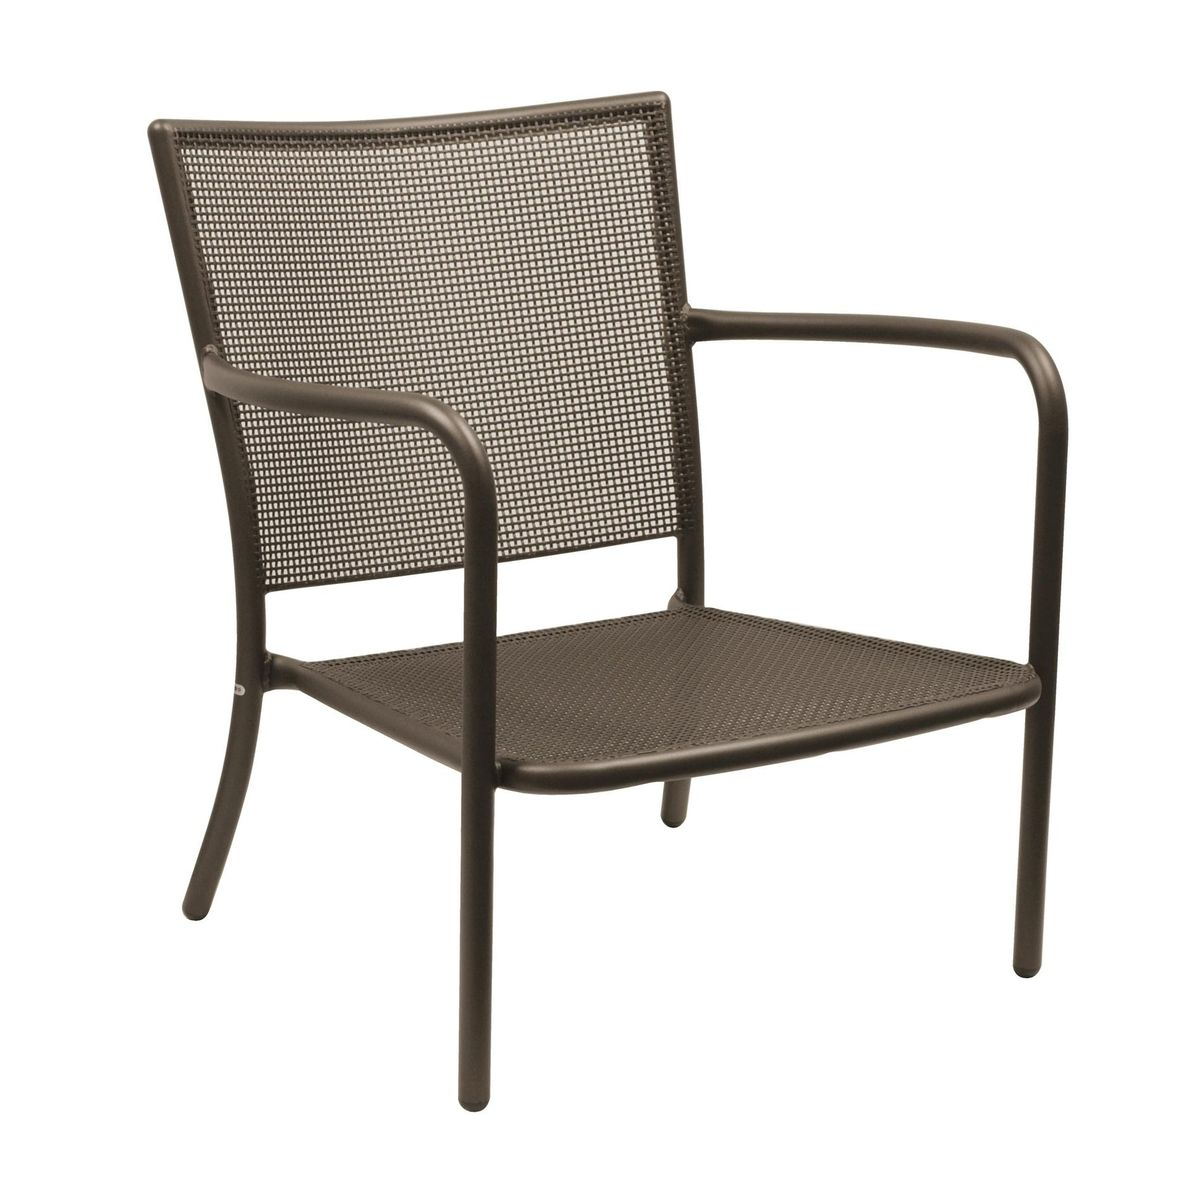 athena garden lounge chair | emu | ambientedirect, Hause deko